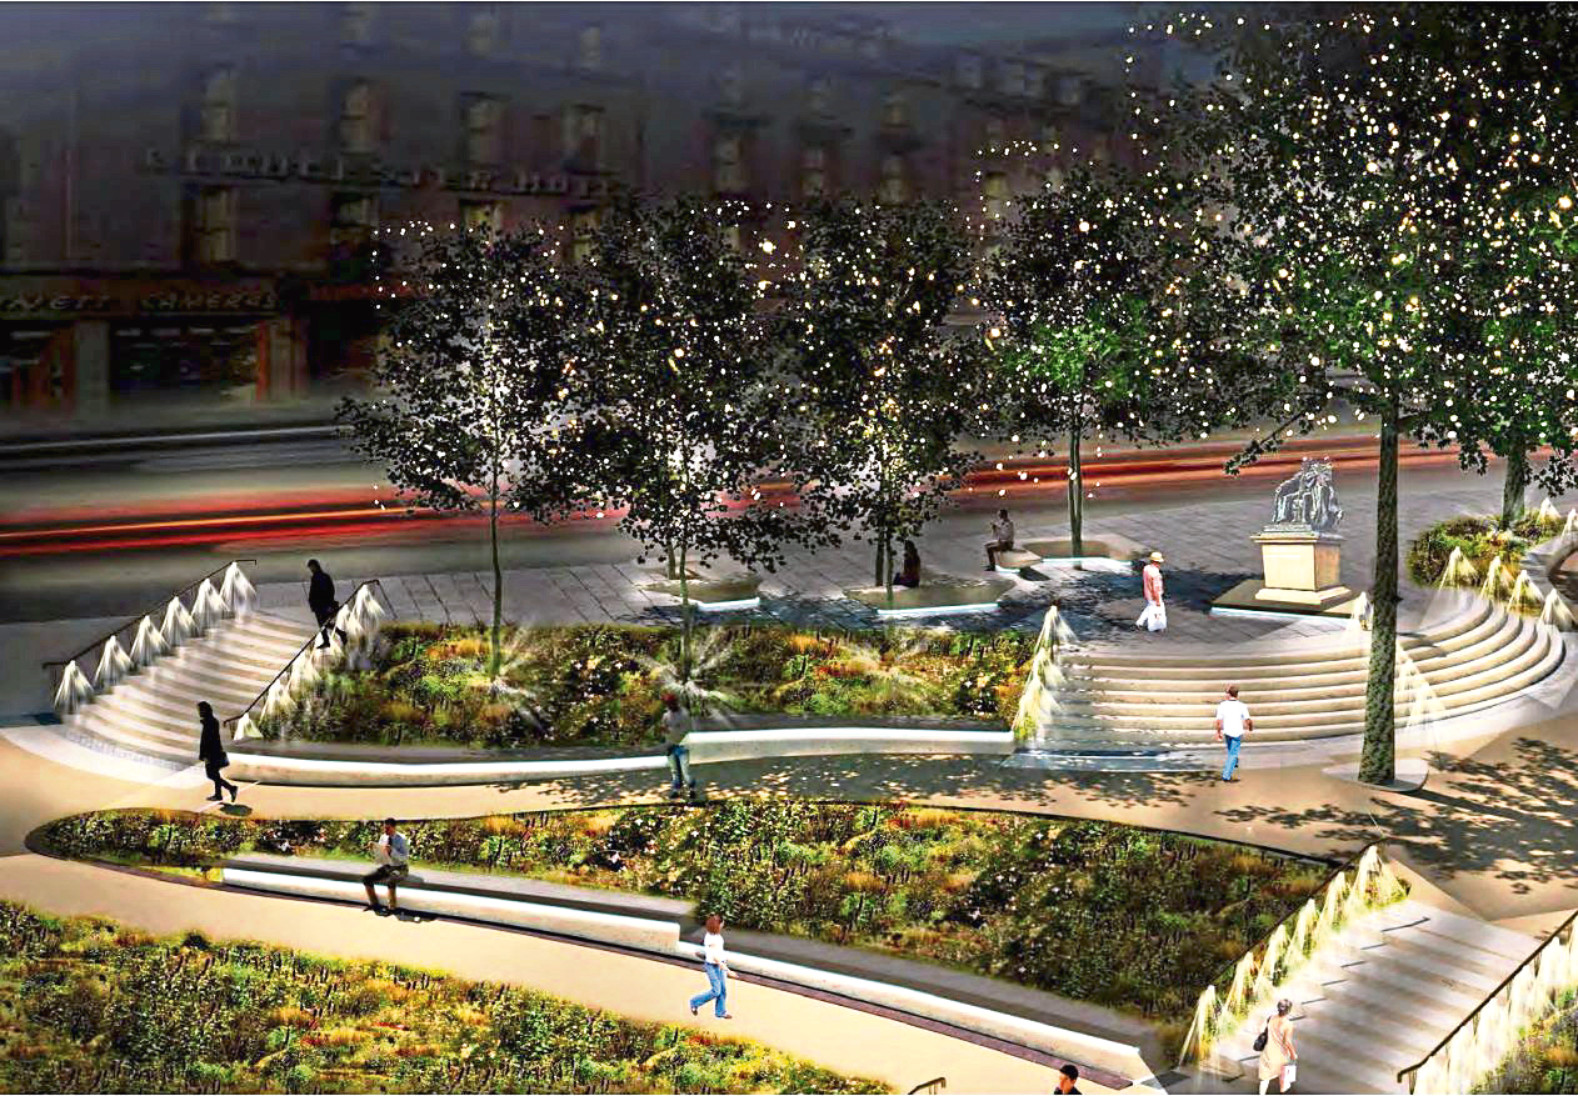 An artist impression of how Union Terrace Gardens will look